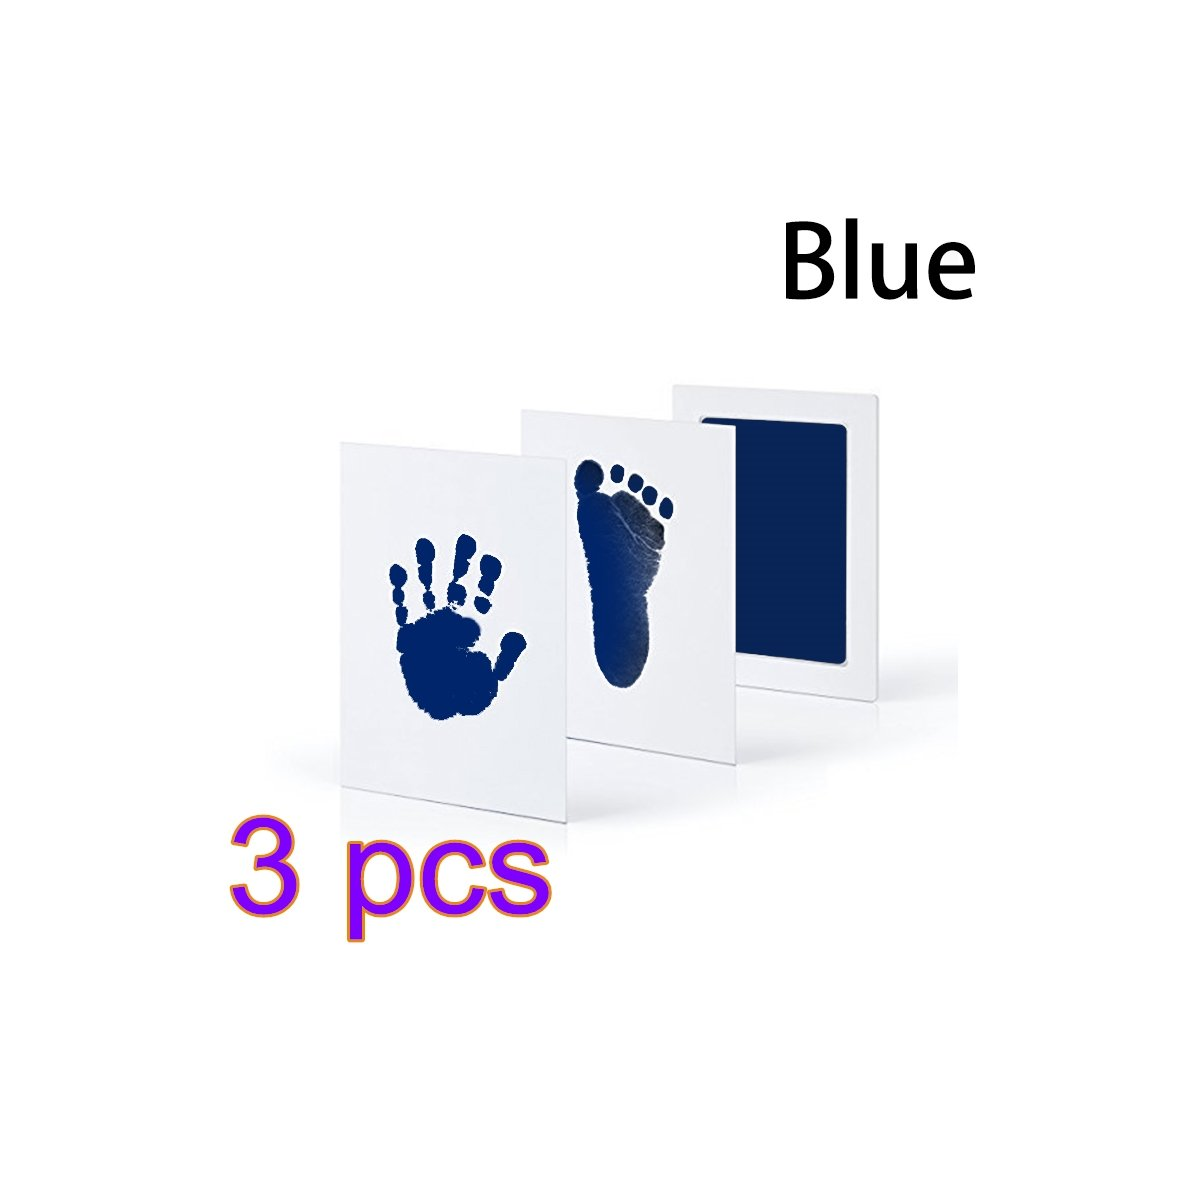 HappyForward 3pcs Baby Inkless Touch Ink Pad Toddler Safe Non-Toxic Footprint Handprint Ink PadsBaby Souvenir